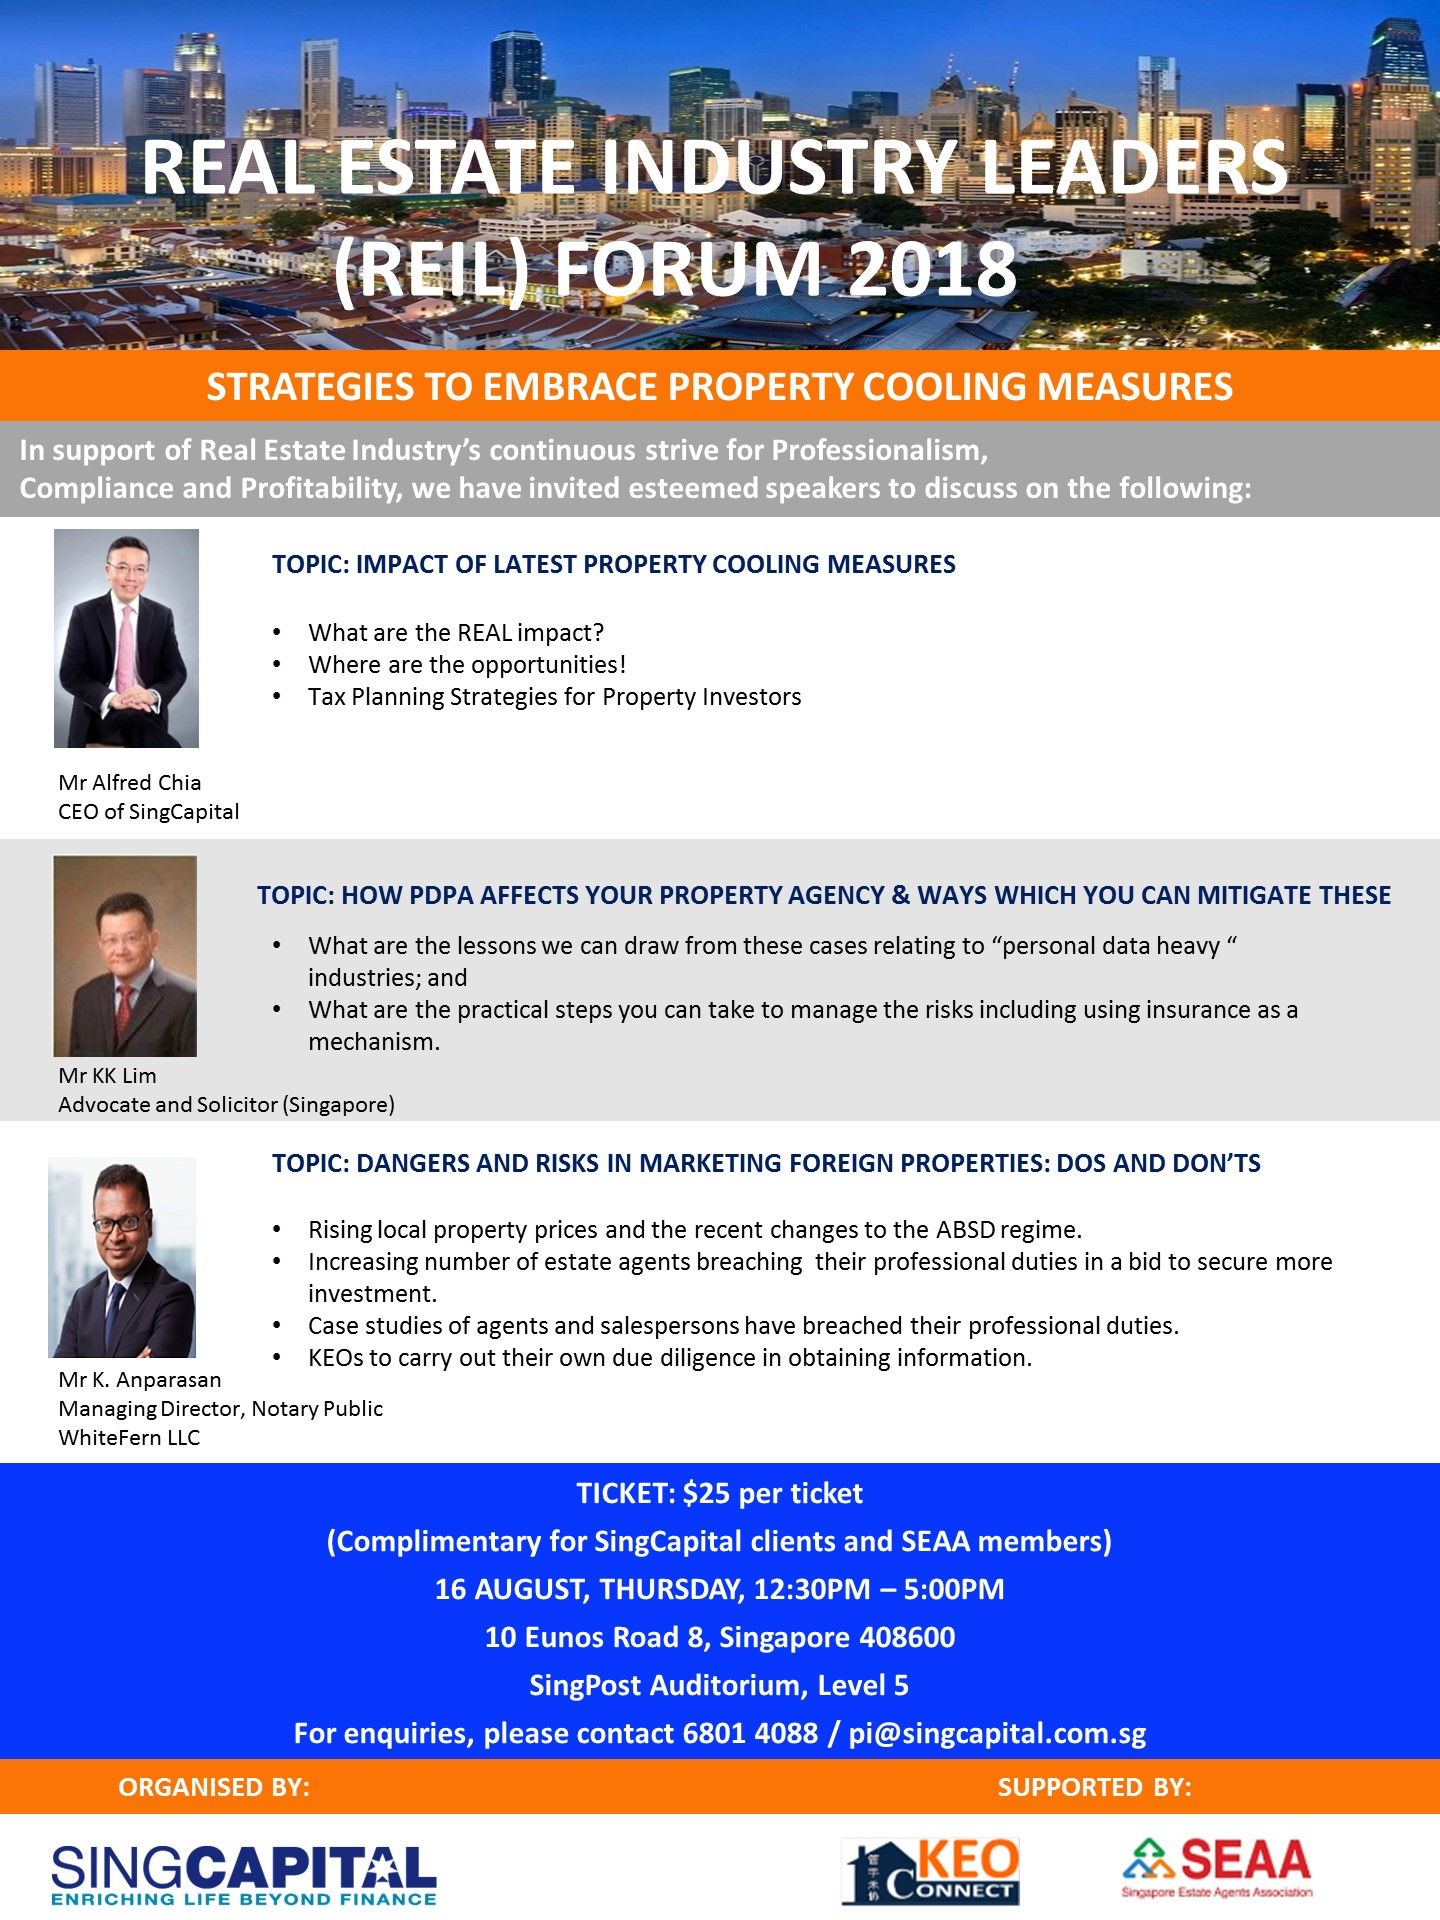 Real Estate Industry Leaders (REIL) Forum 2018